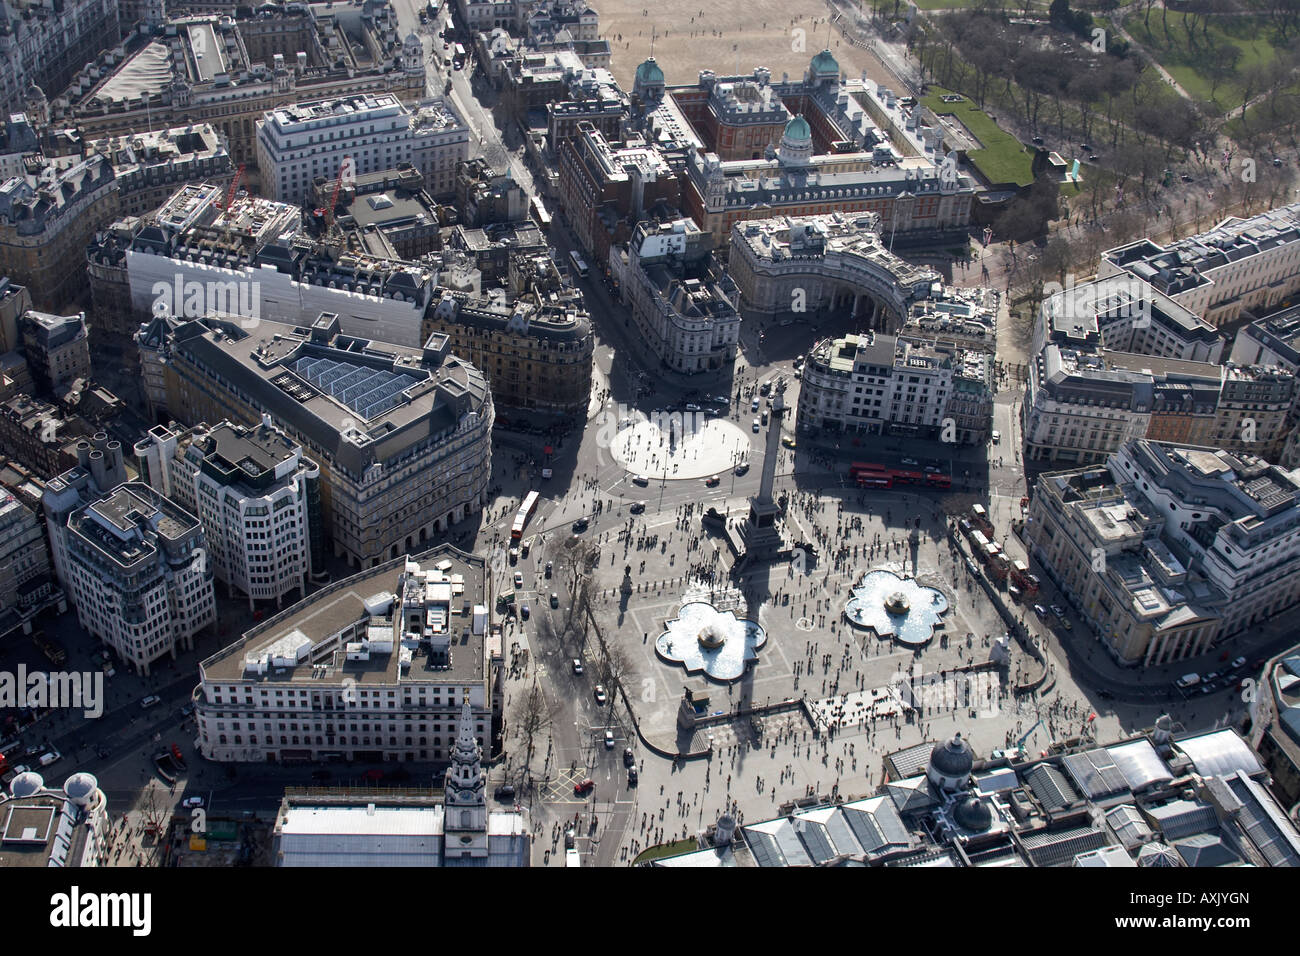 High level oblique aerial view south of Trafalgar Square London WC2 England UK Feb 2006 Stock Photo